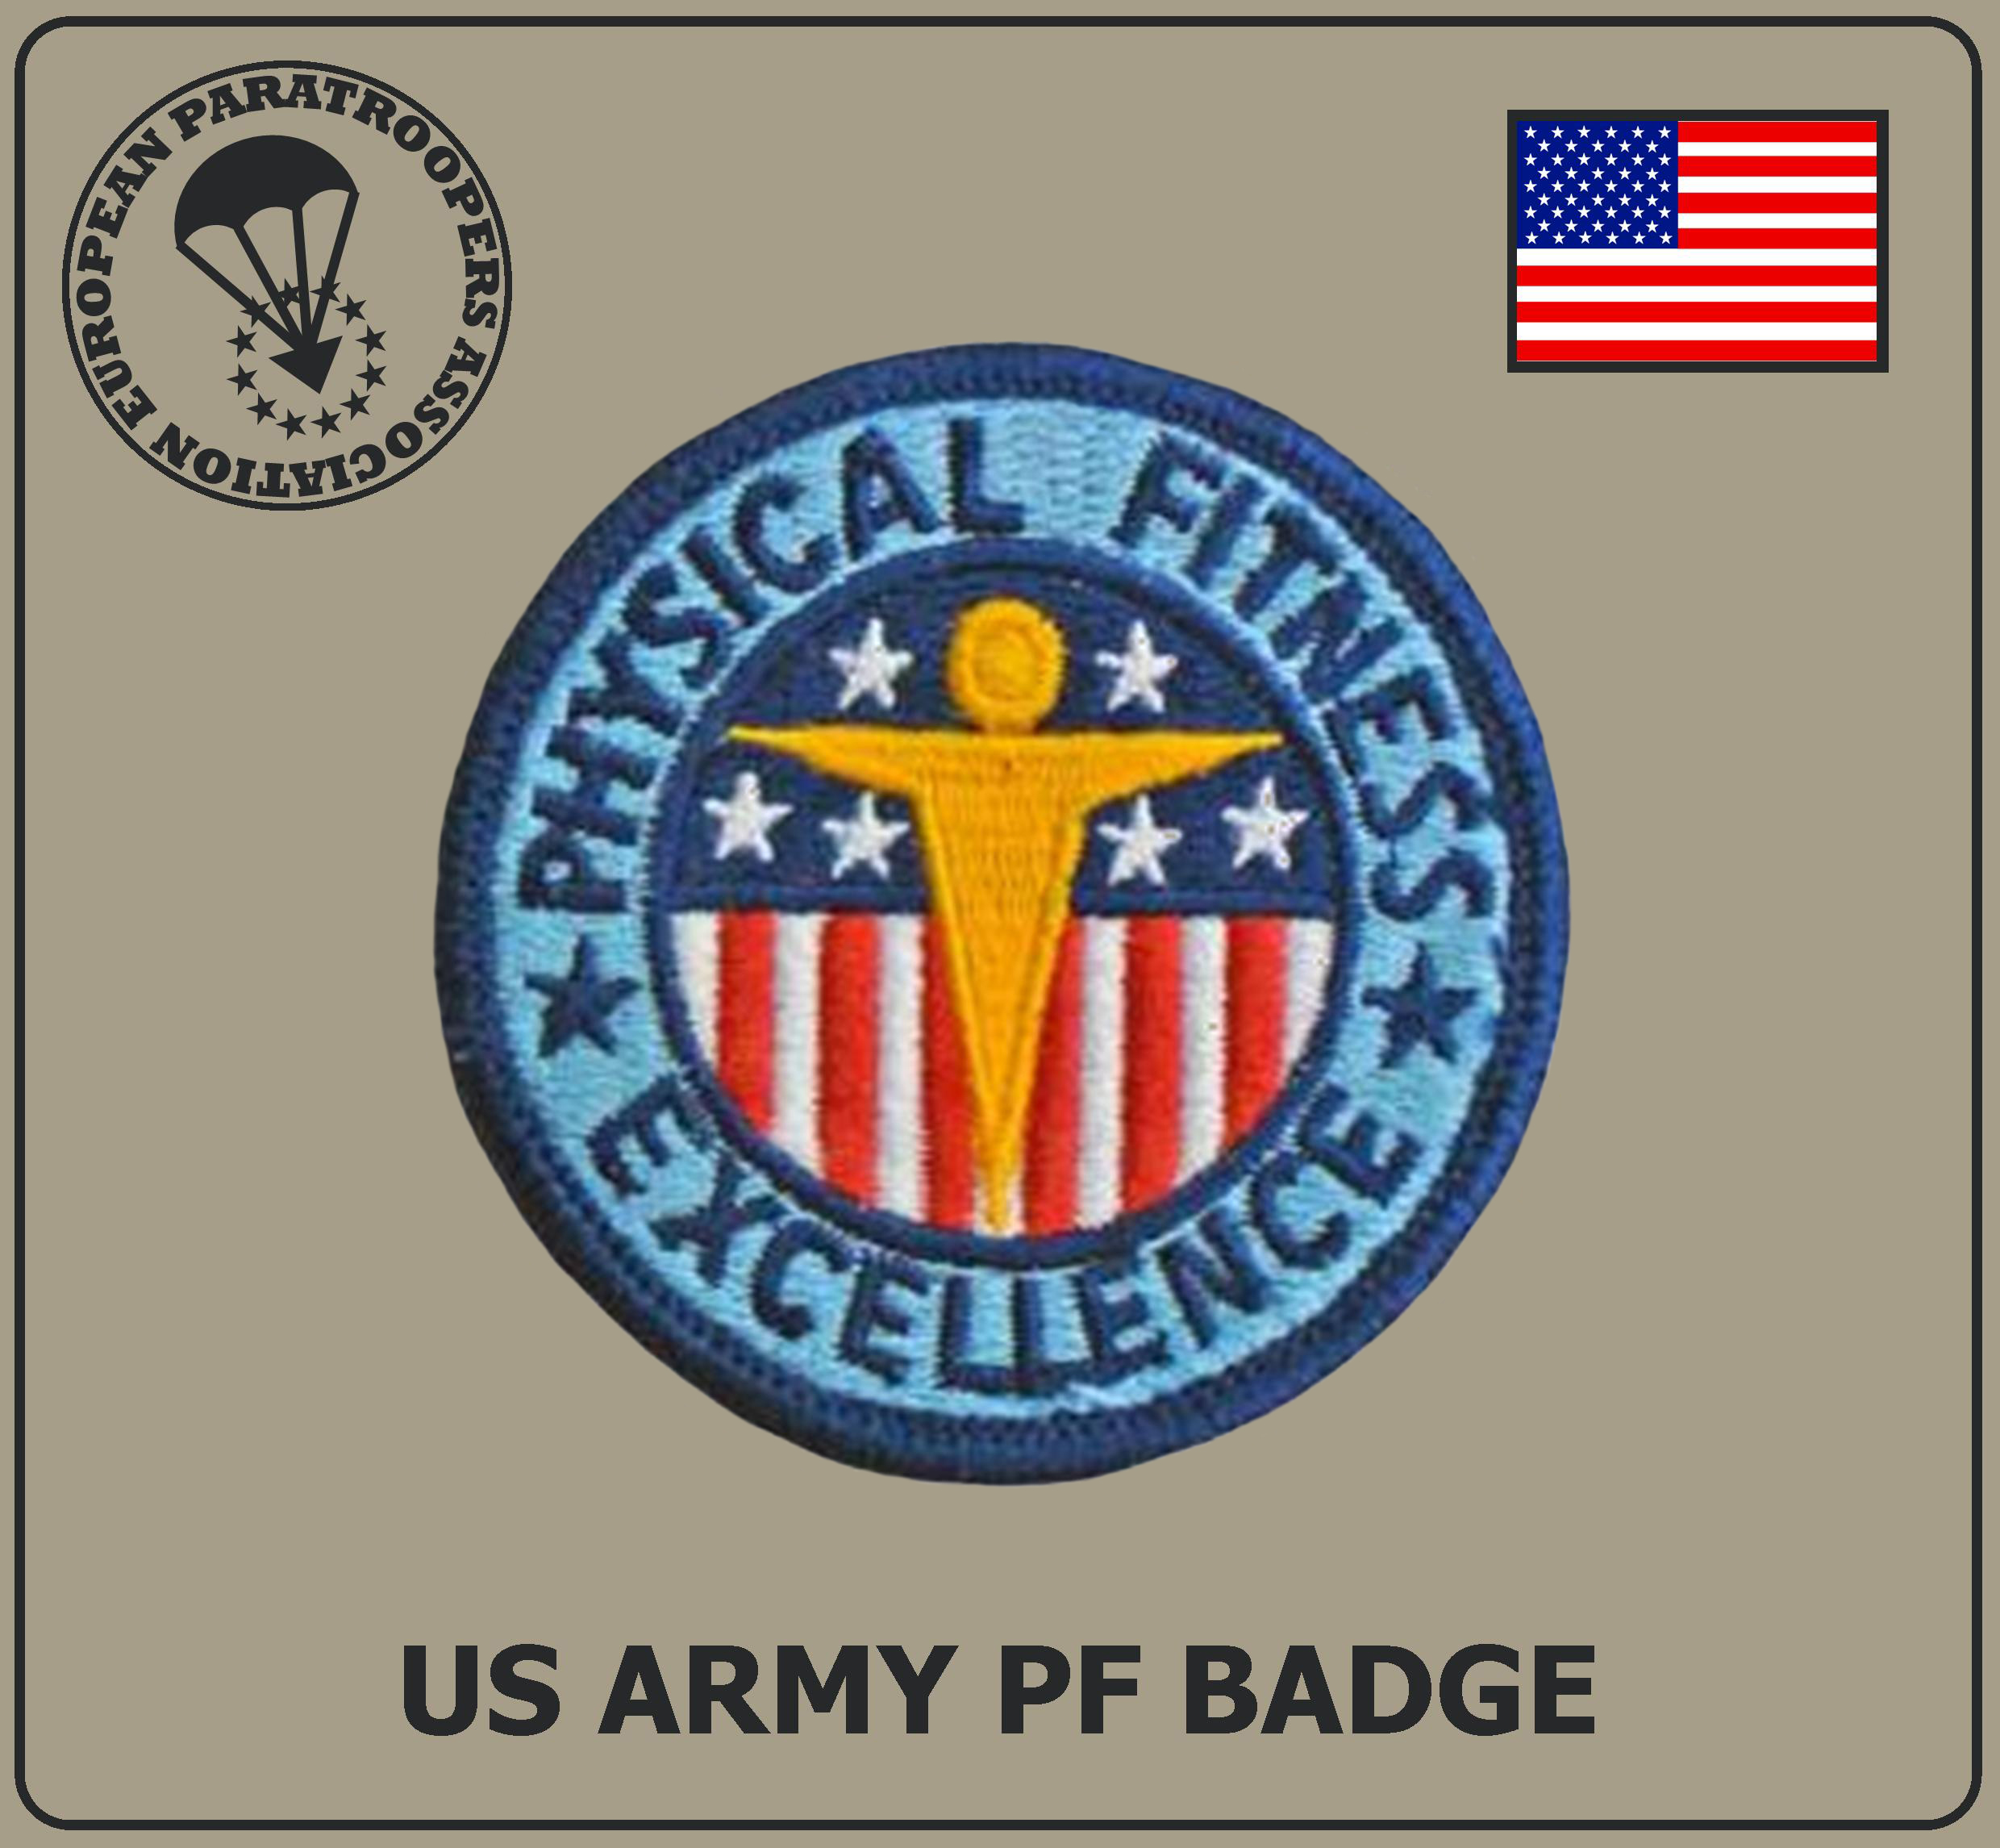 US ARMY PF BADGE